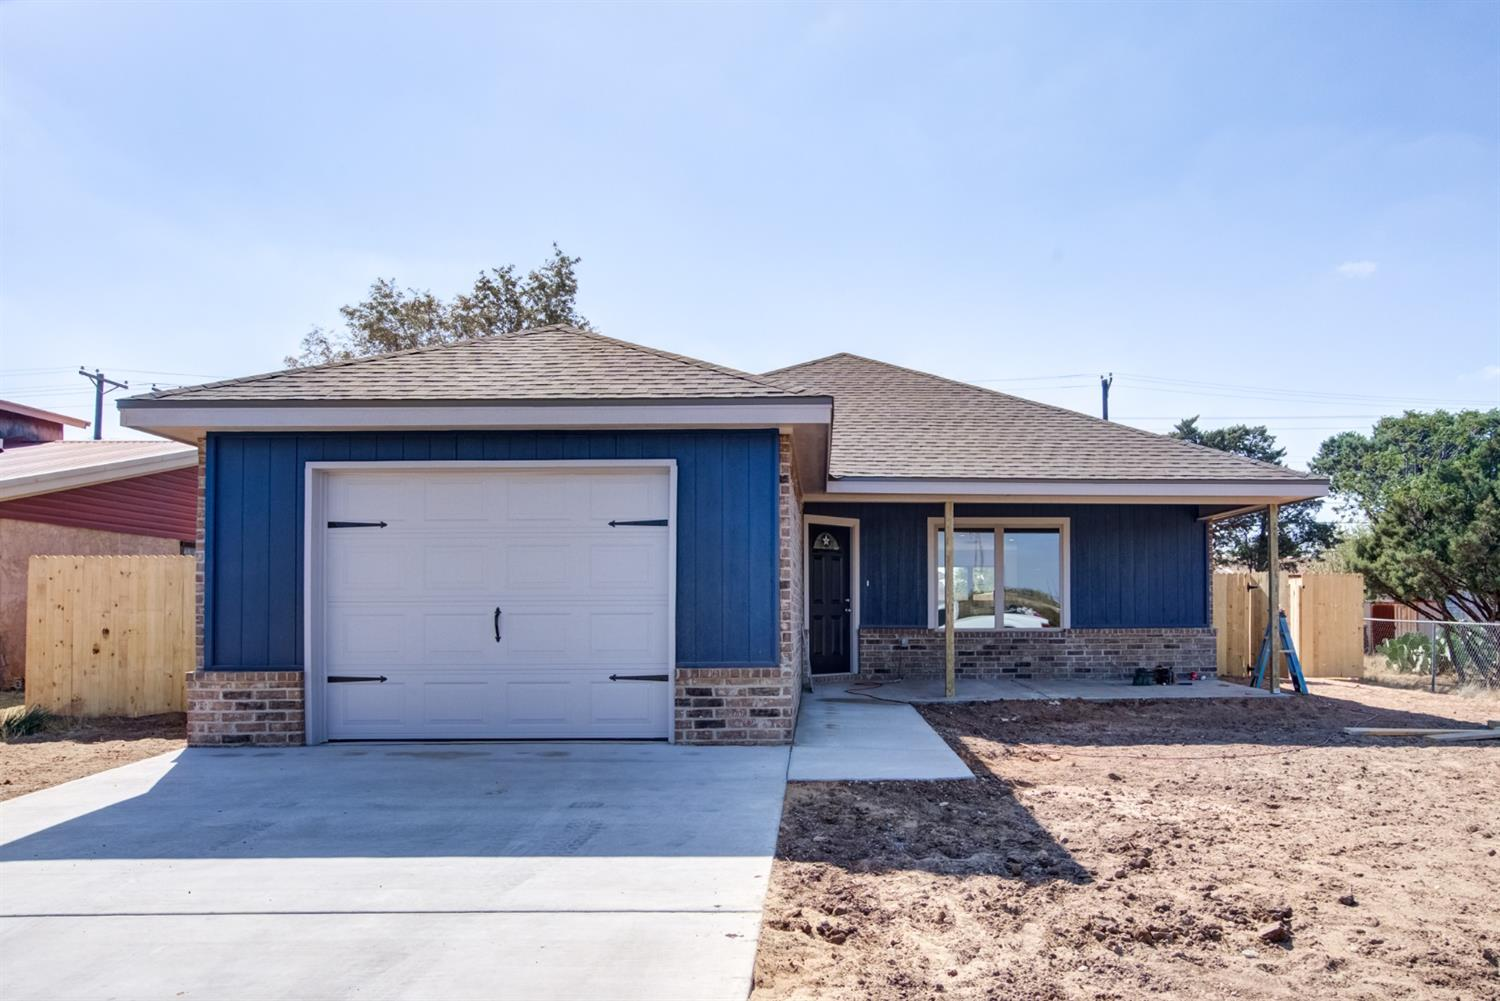 New construction! This home features 3 bedroom, 2 bathroom, 1 Car garage. Open concept. Isolated master. Large front and back yard.